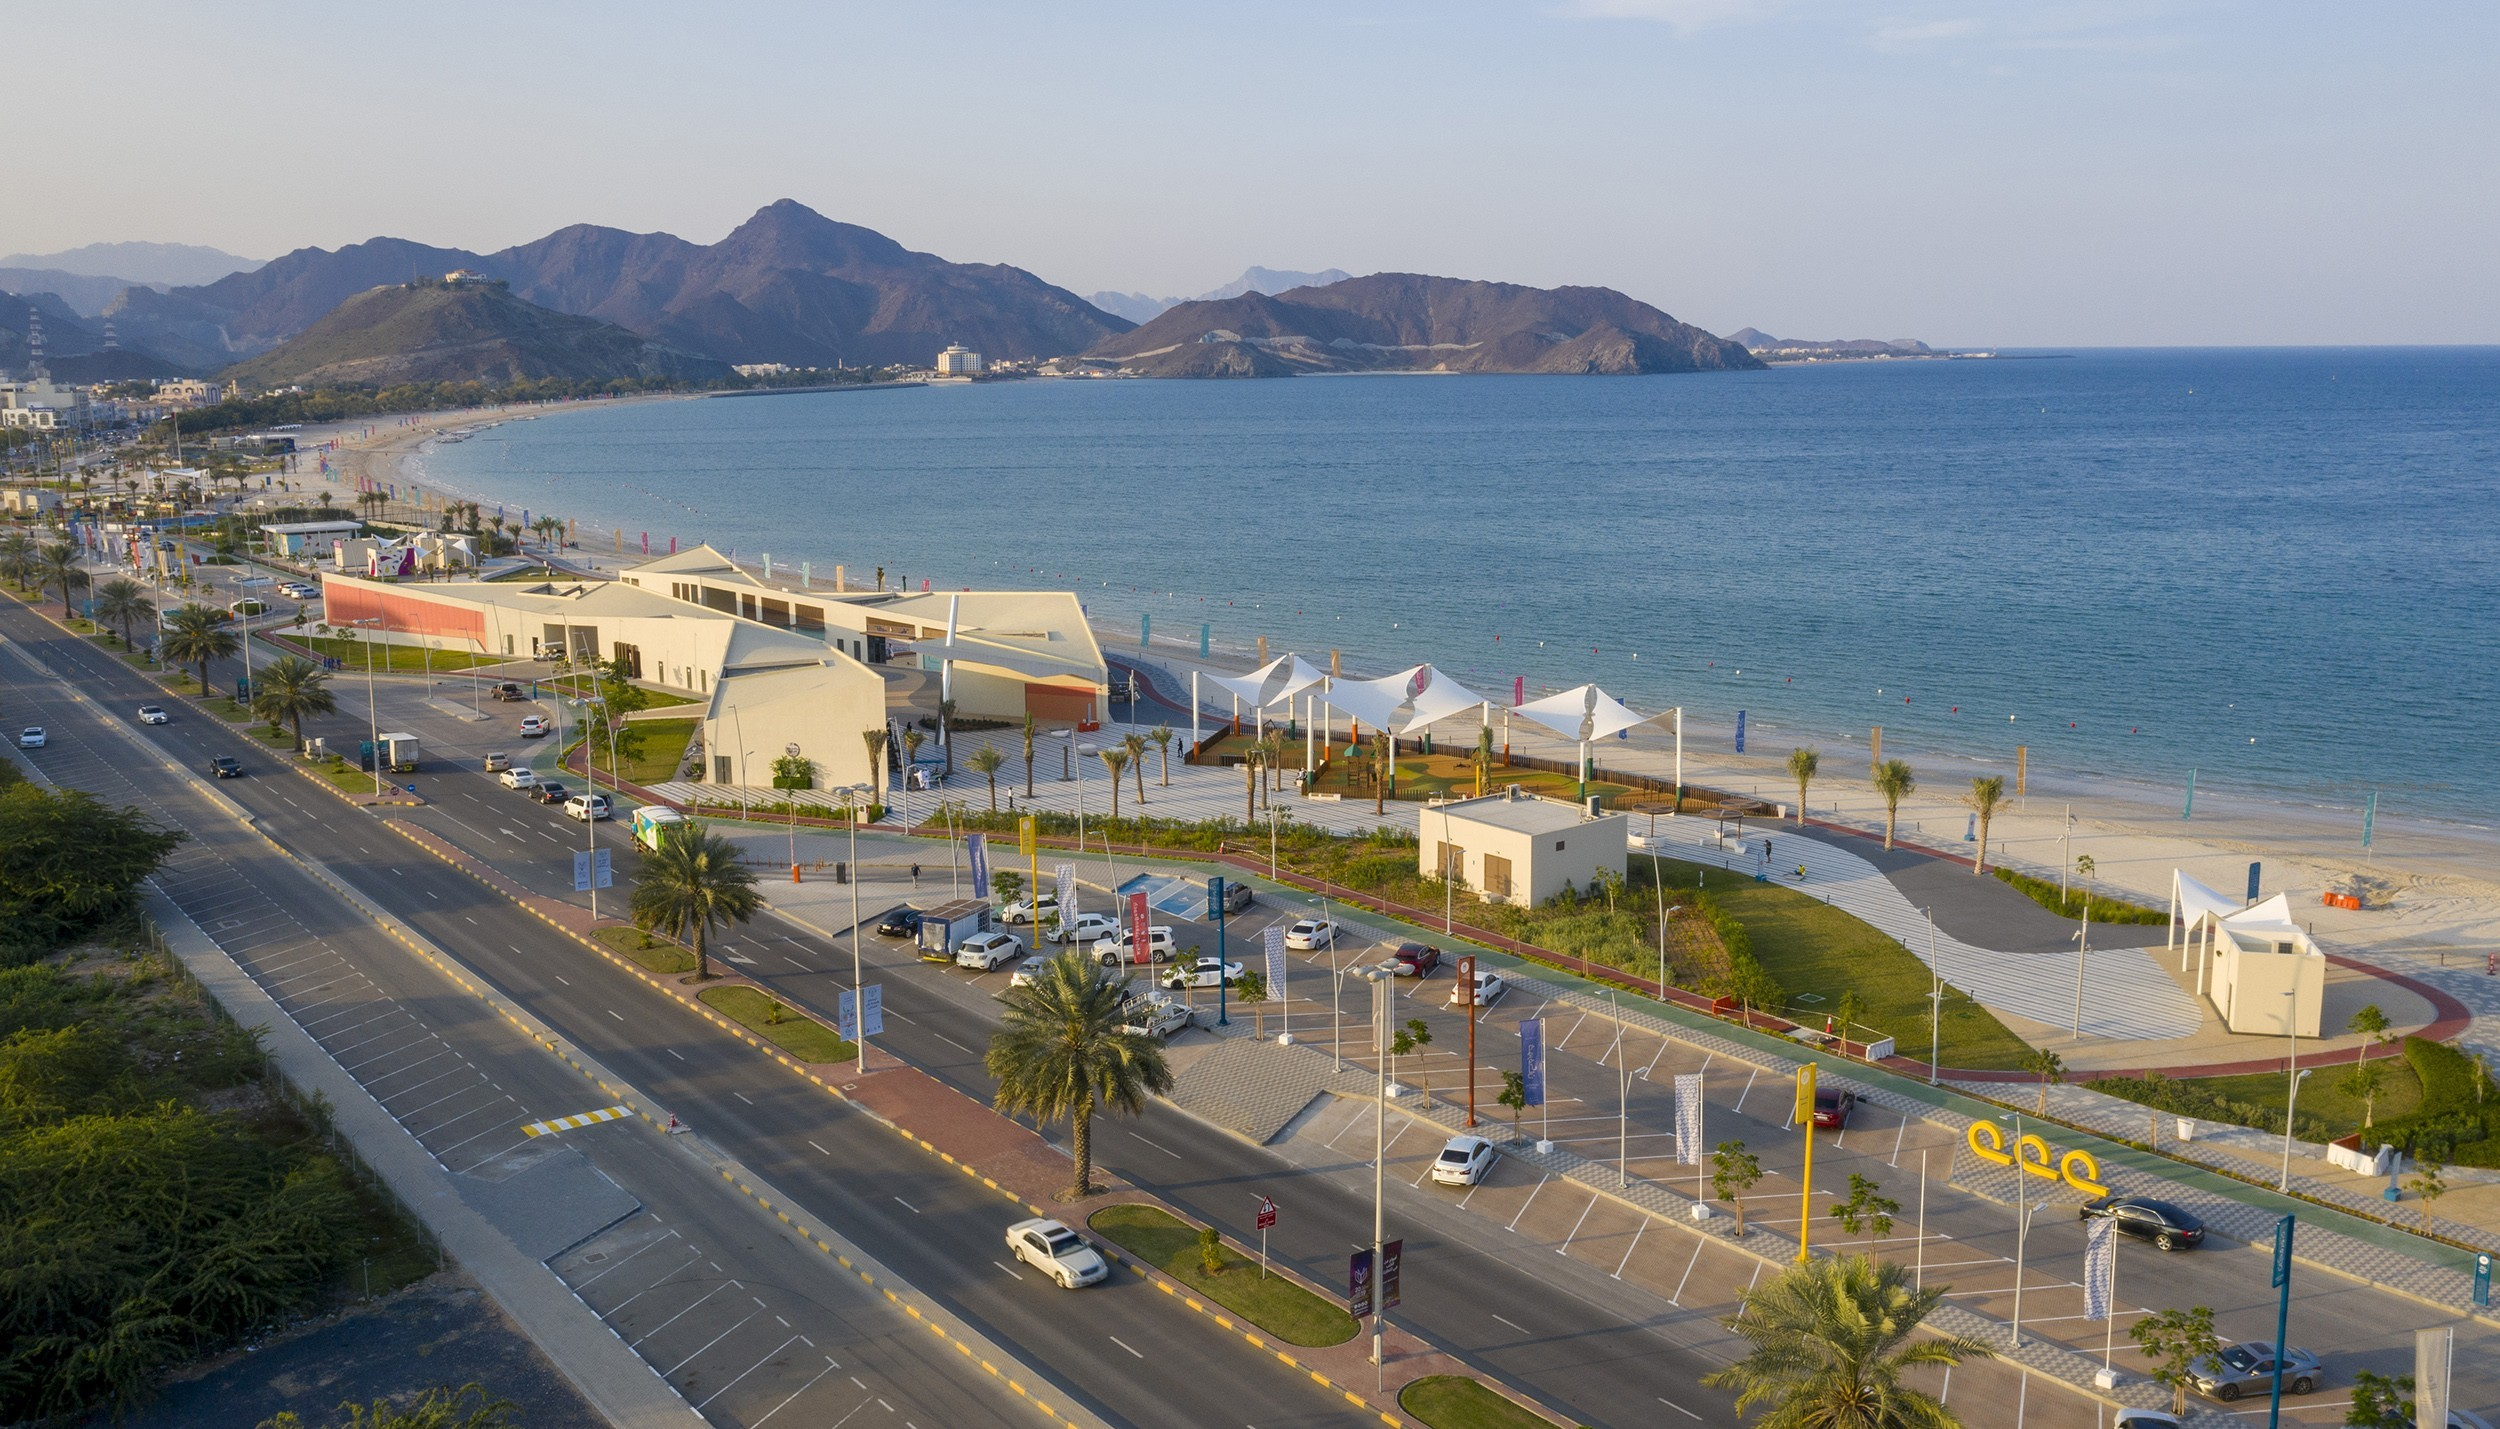 Khorfakkan Beach To Organize Sports Activities During The Holy Month of Ramadan